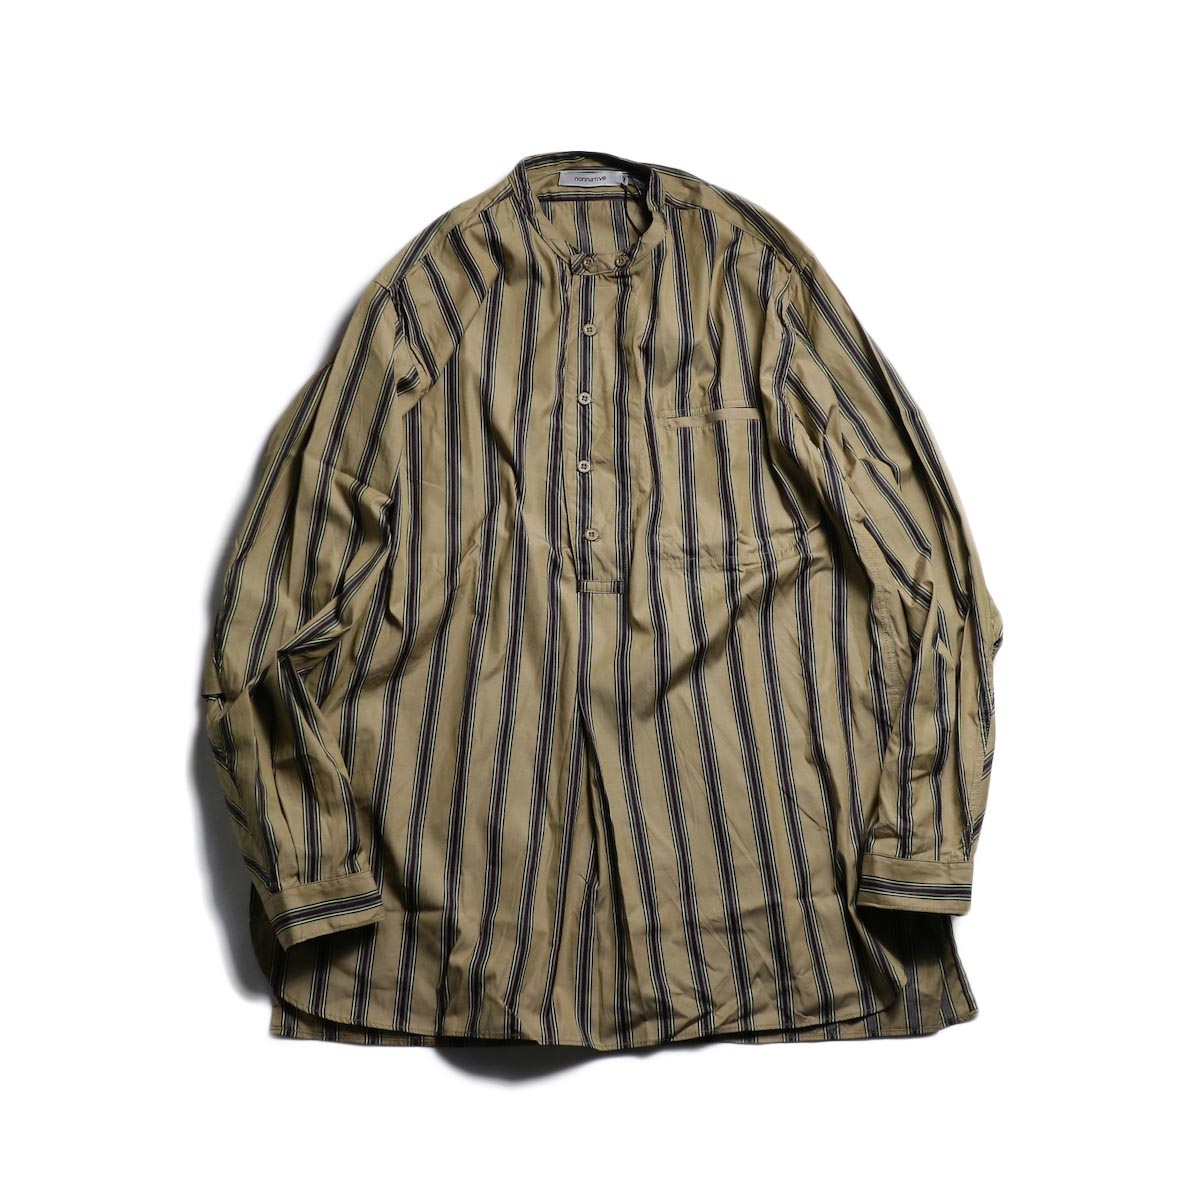 nonnative / SCIENTIST PULLOVER SHIRT COTTON SATIN MULTI STRIPE -Beige